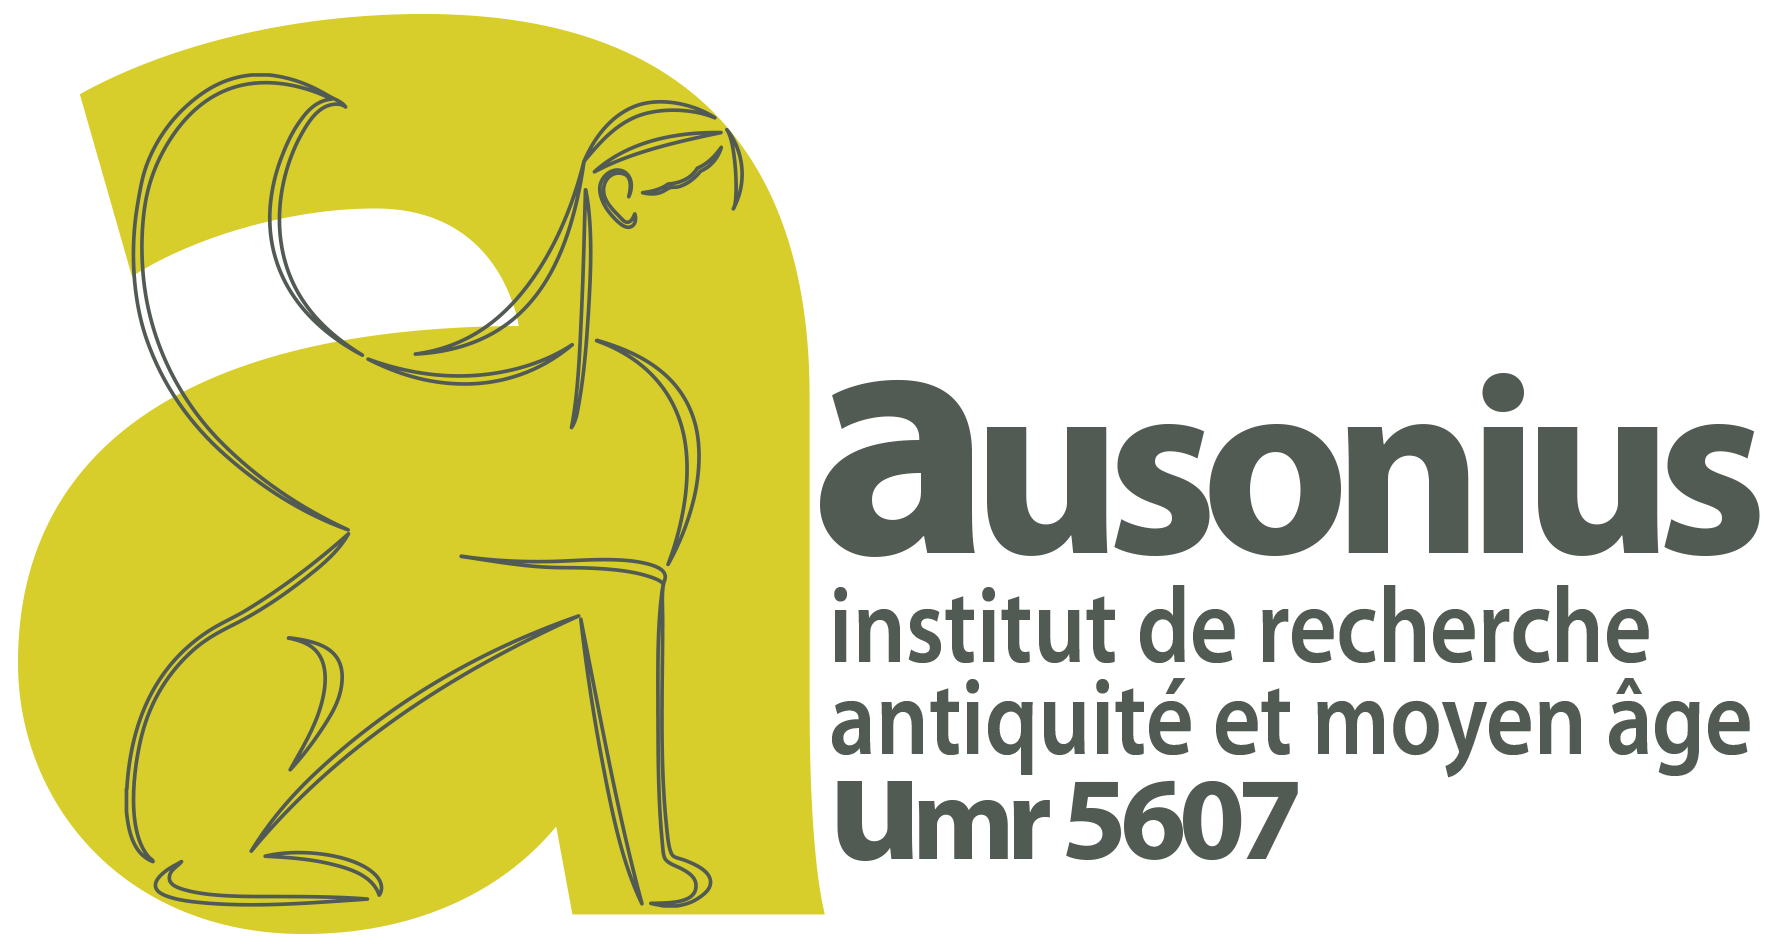 LOGO AUSONIUS JAUNE WEB